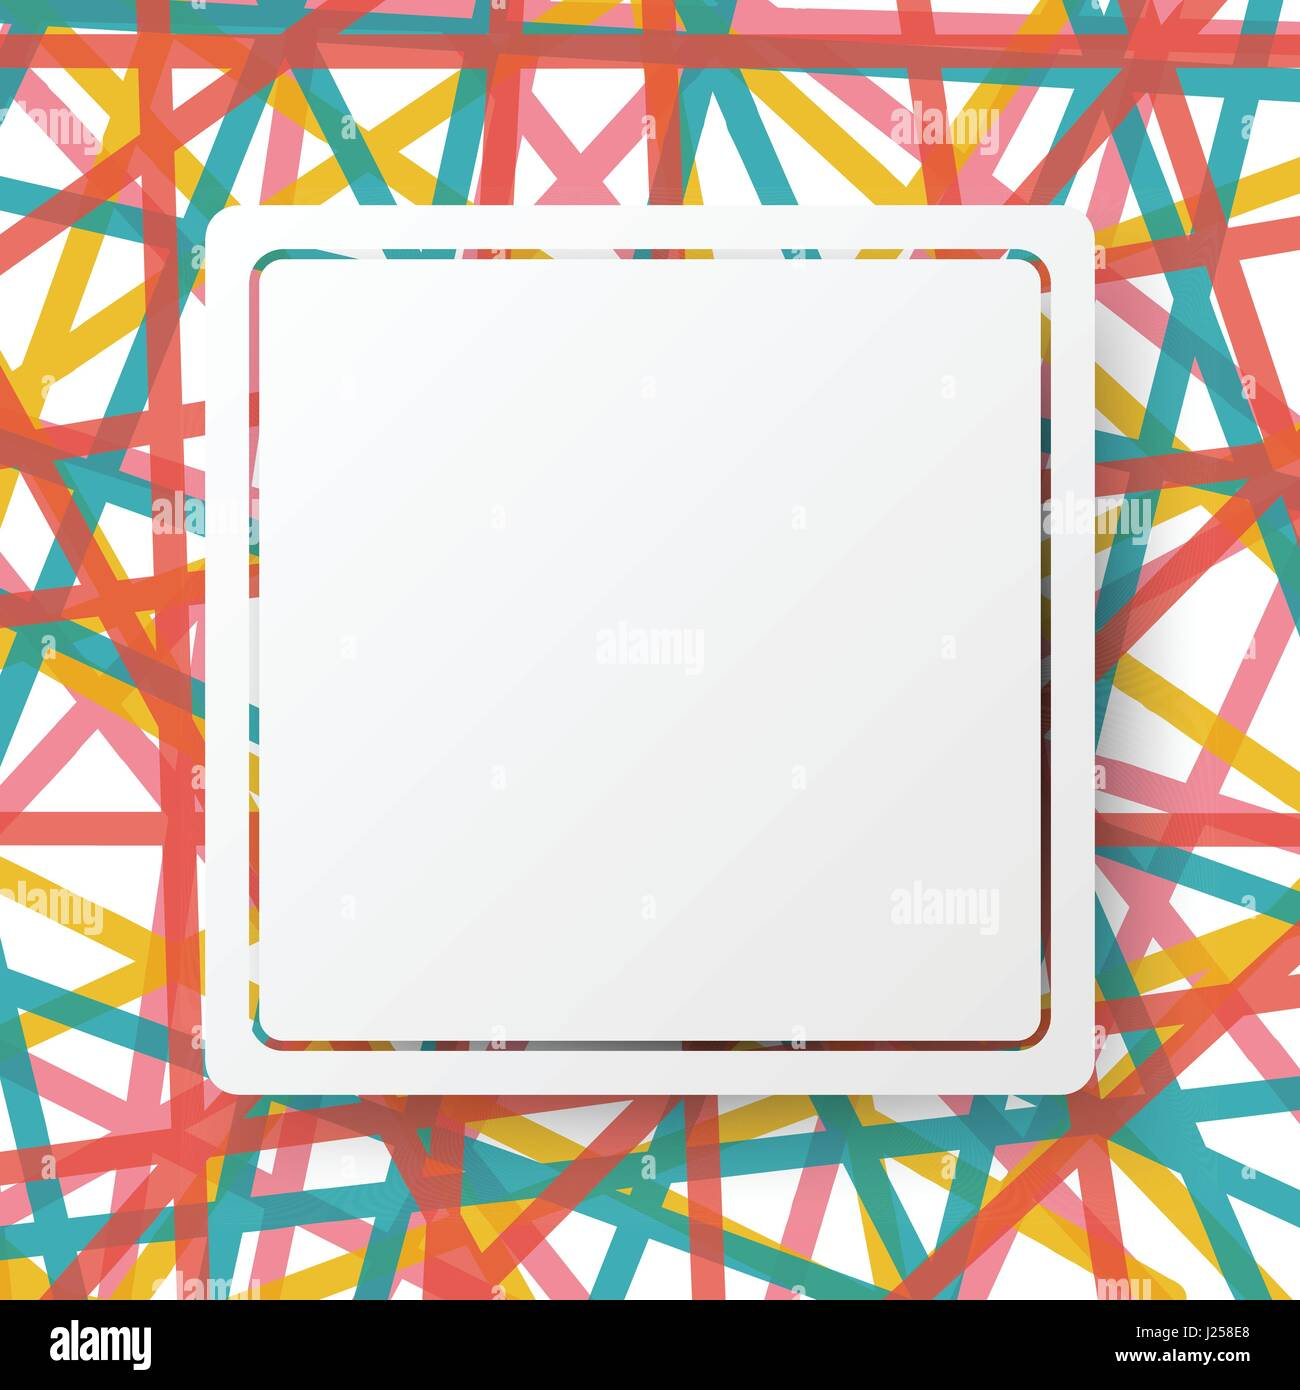 White Square Board And Border On Colorful Line Abstract